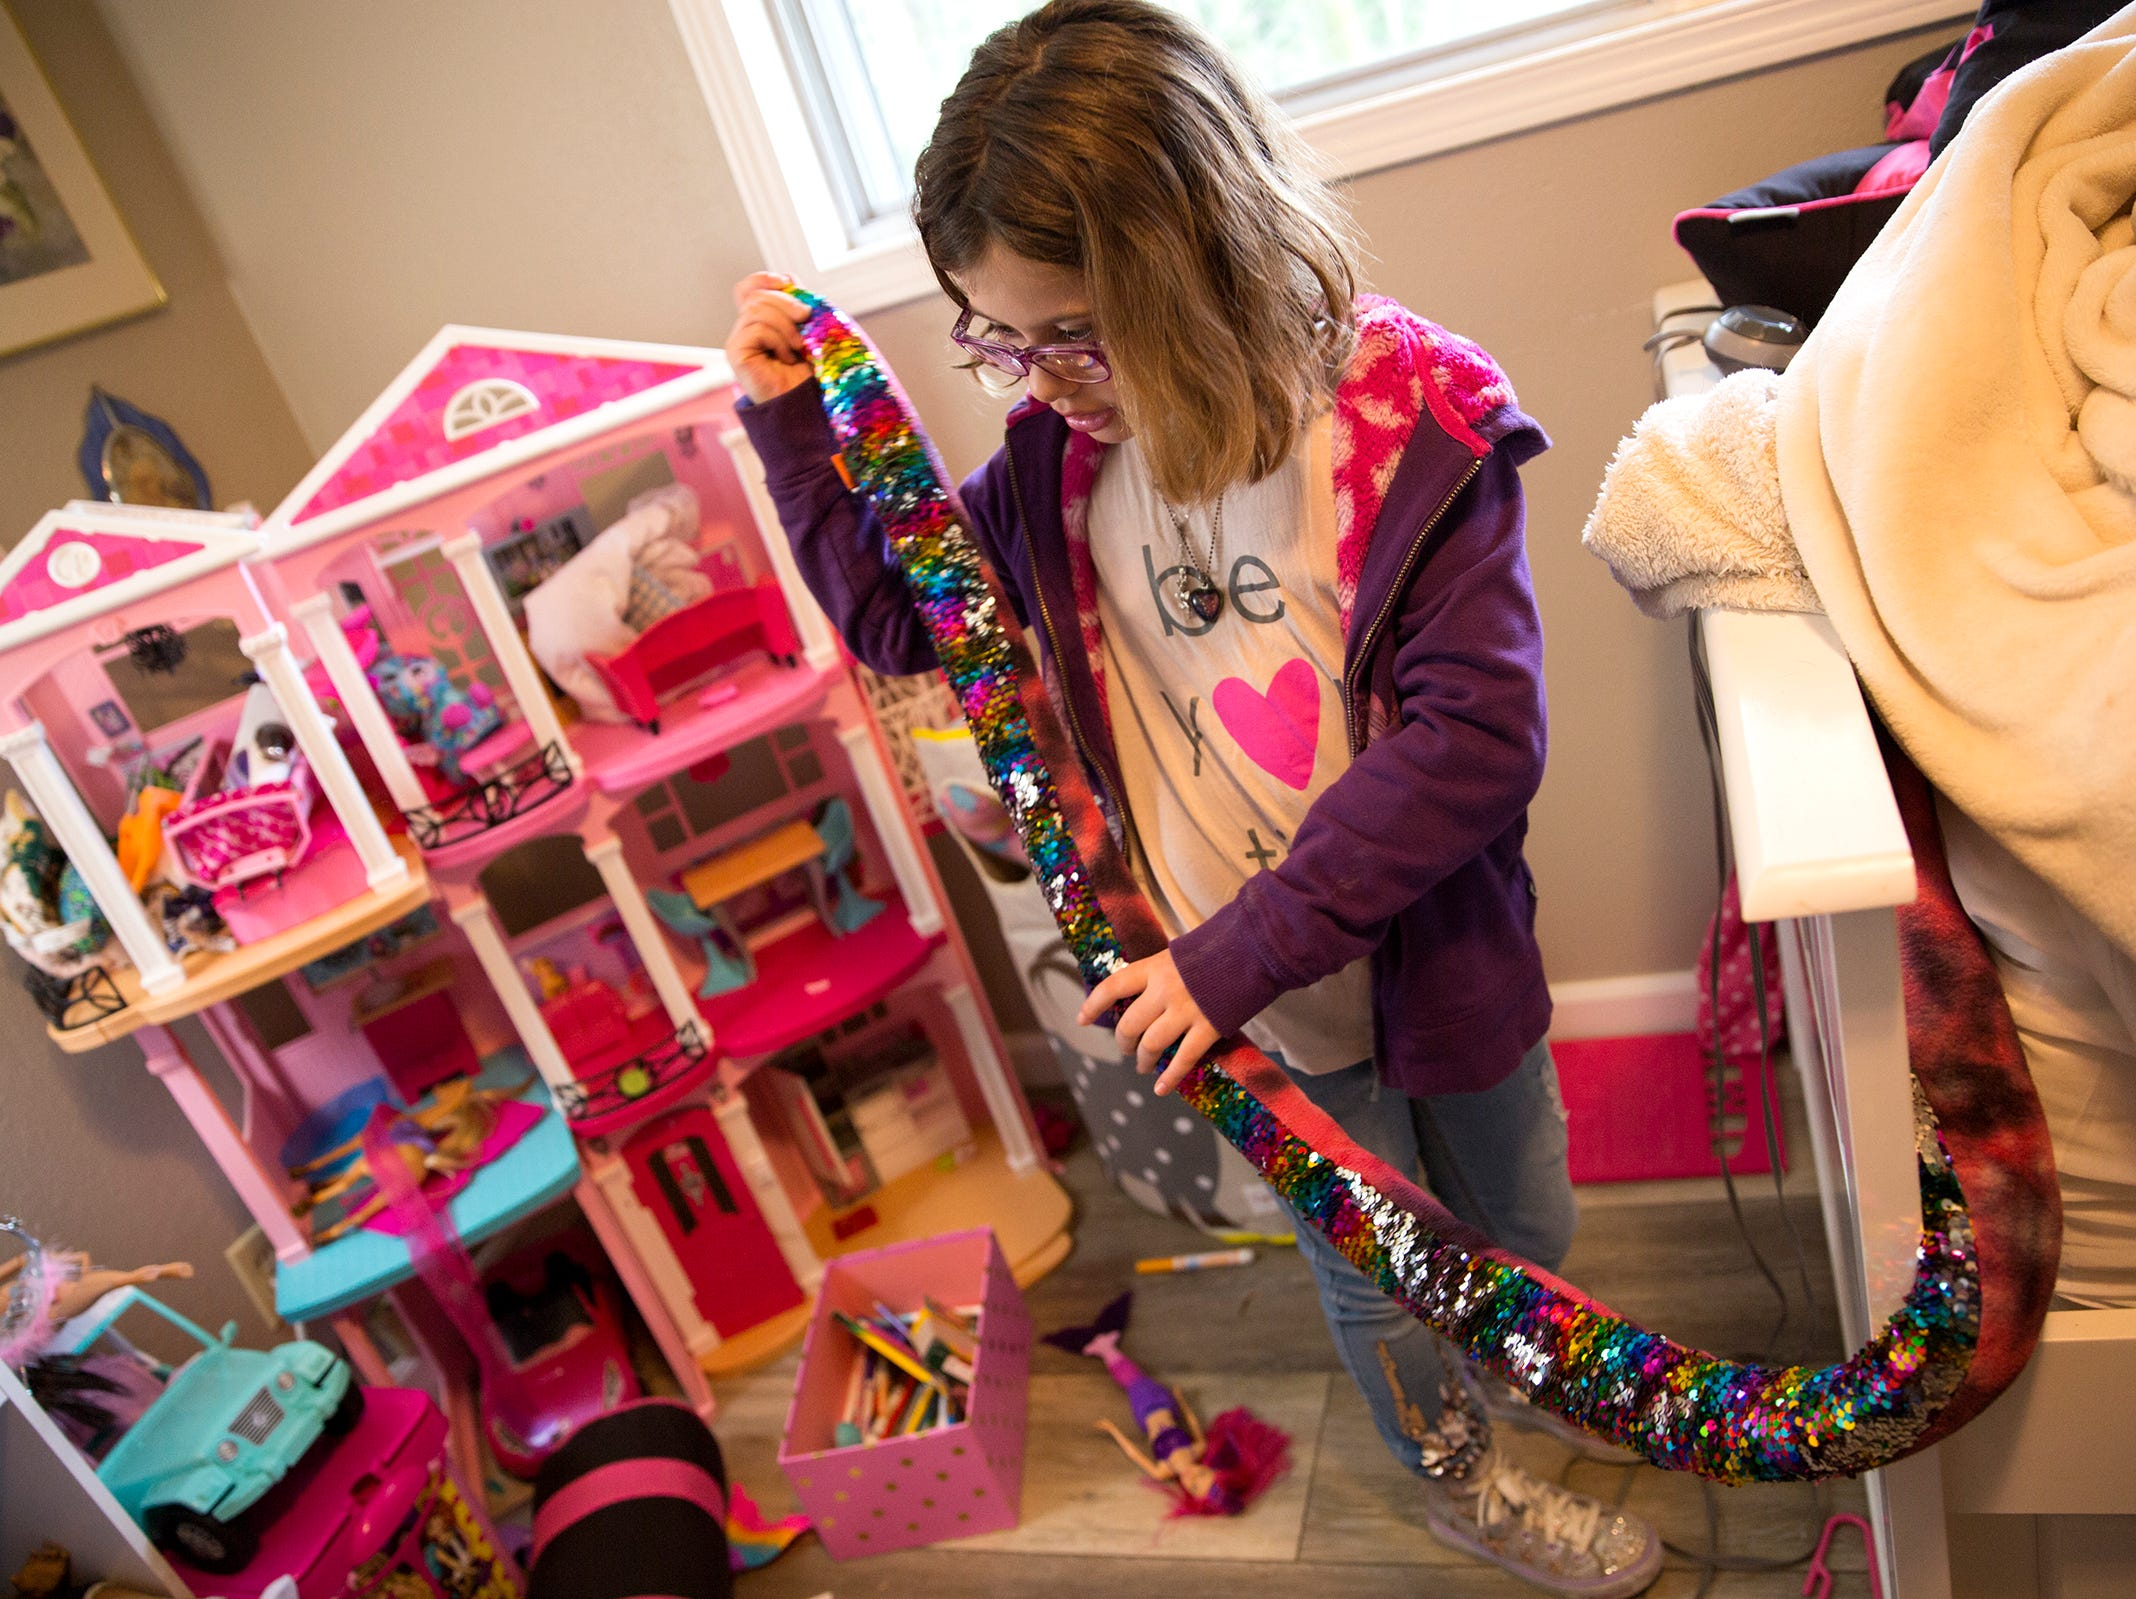 Haley Pollman, a 9-year-old with a rare nervous system disorder, gives a tour of her room at her home in Salem on Saturday, Feb. 23, 2019.